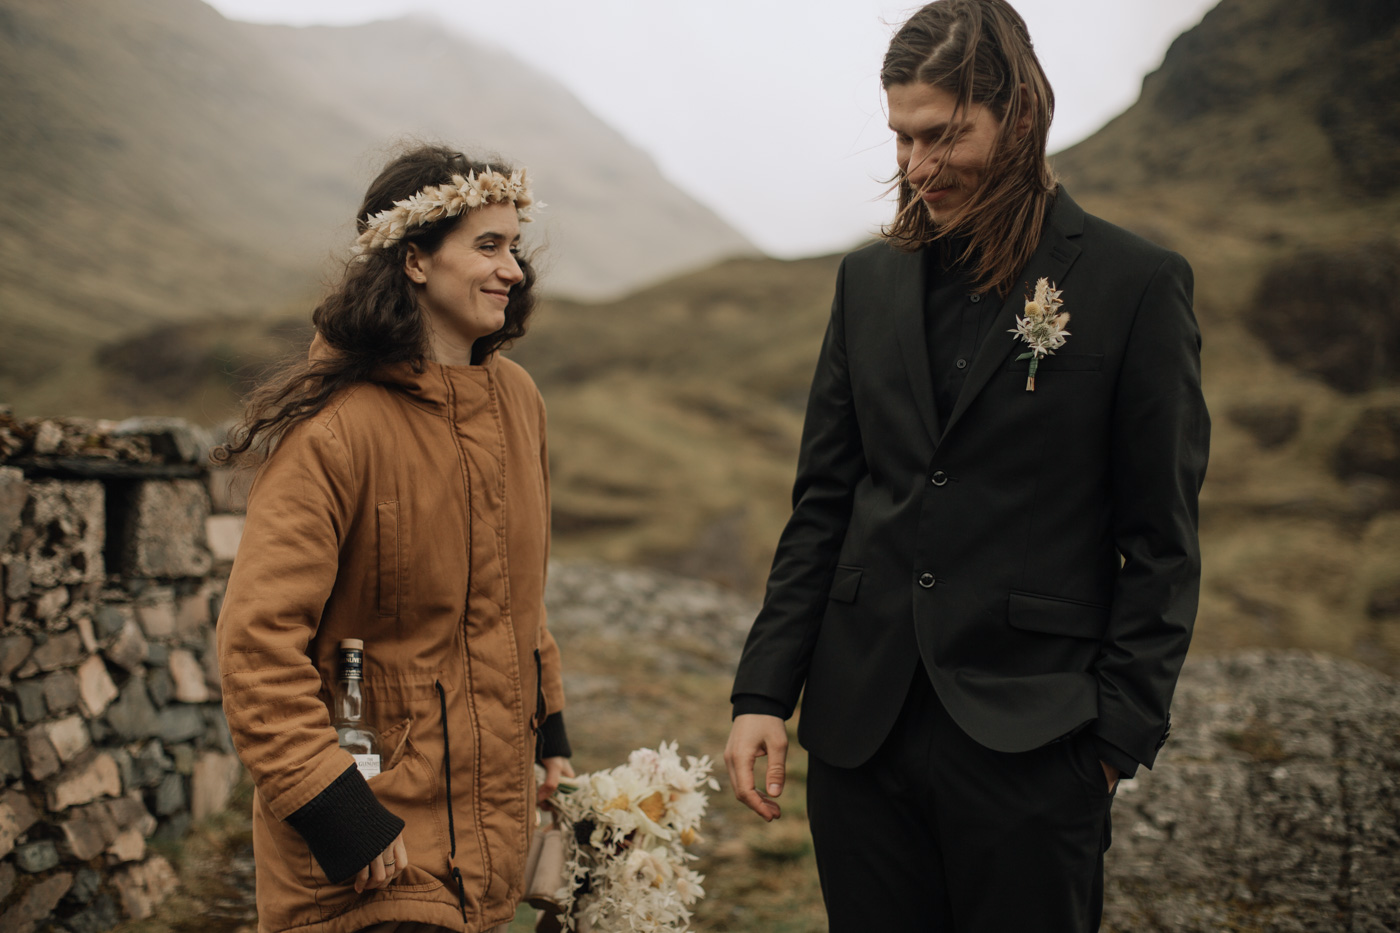 Candid adventurous elopement in Glencoe valley